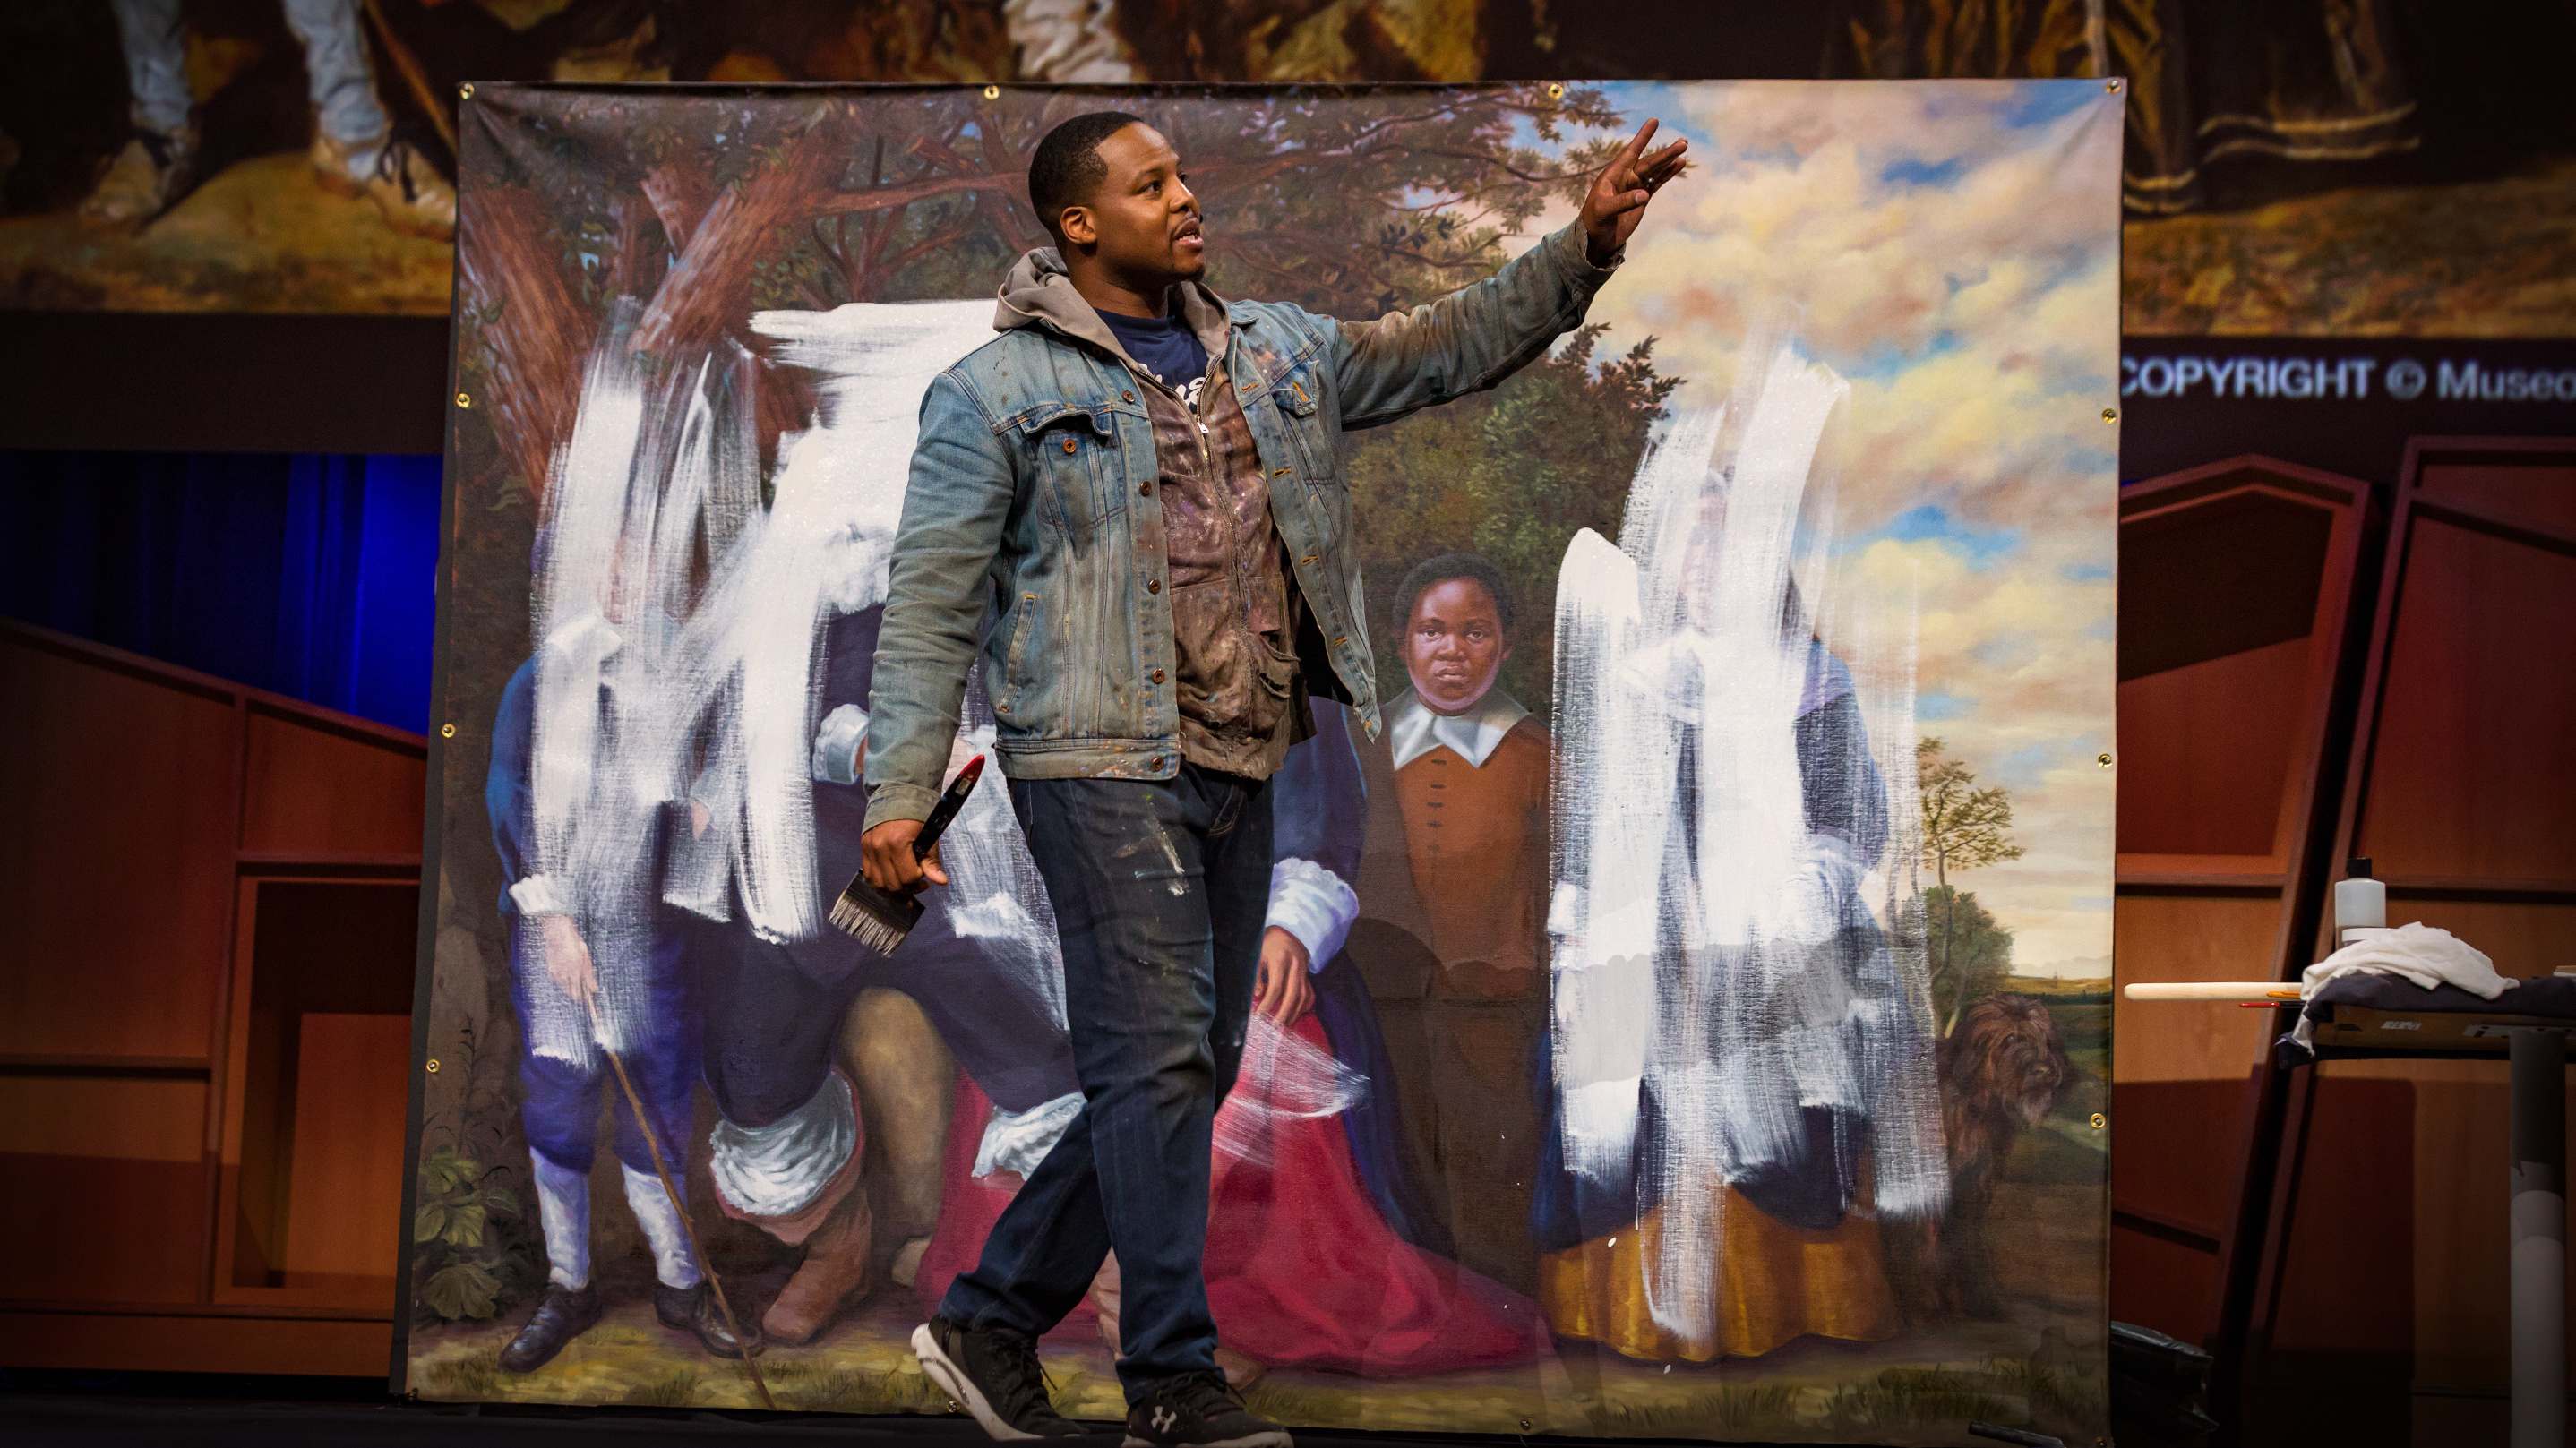 Image for Titus Kaphar: How Can We Address Centuries of Racism In Art? Article